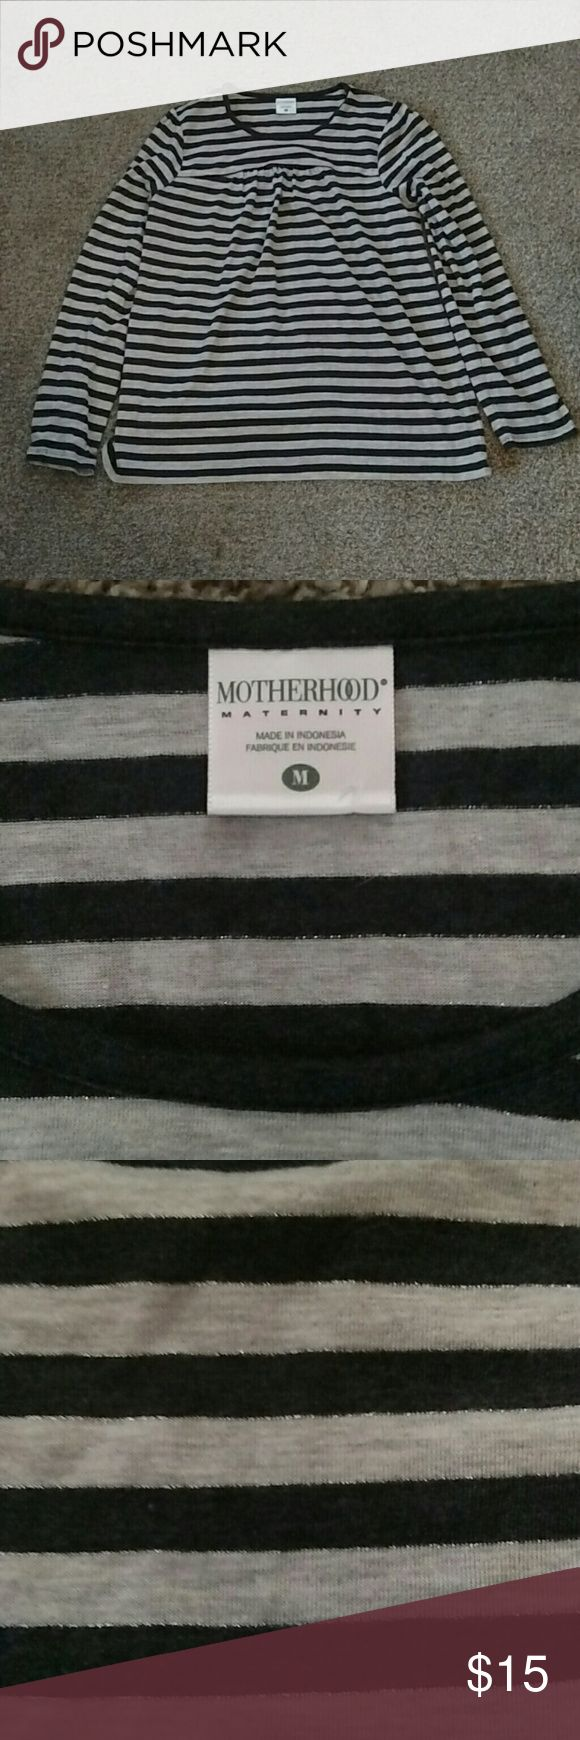 Super cute babydoll style Motherhood Maternity M Motherhood Maternity babydoll style shirt. Navy & gray. Worn once excellent condition. Will bundle maternity clothes cheap!! Motherhood Maternity Tops Tees - Long Sleeve